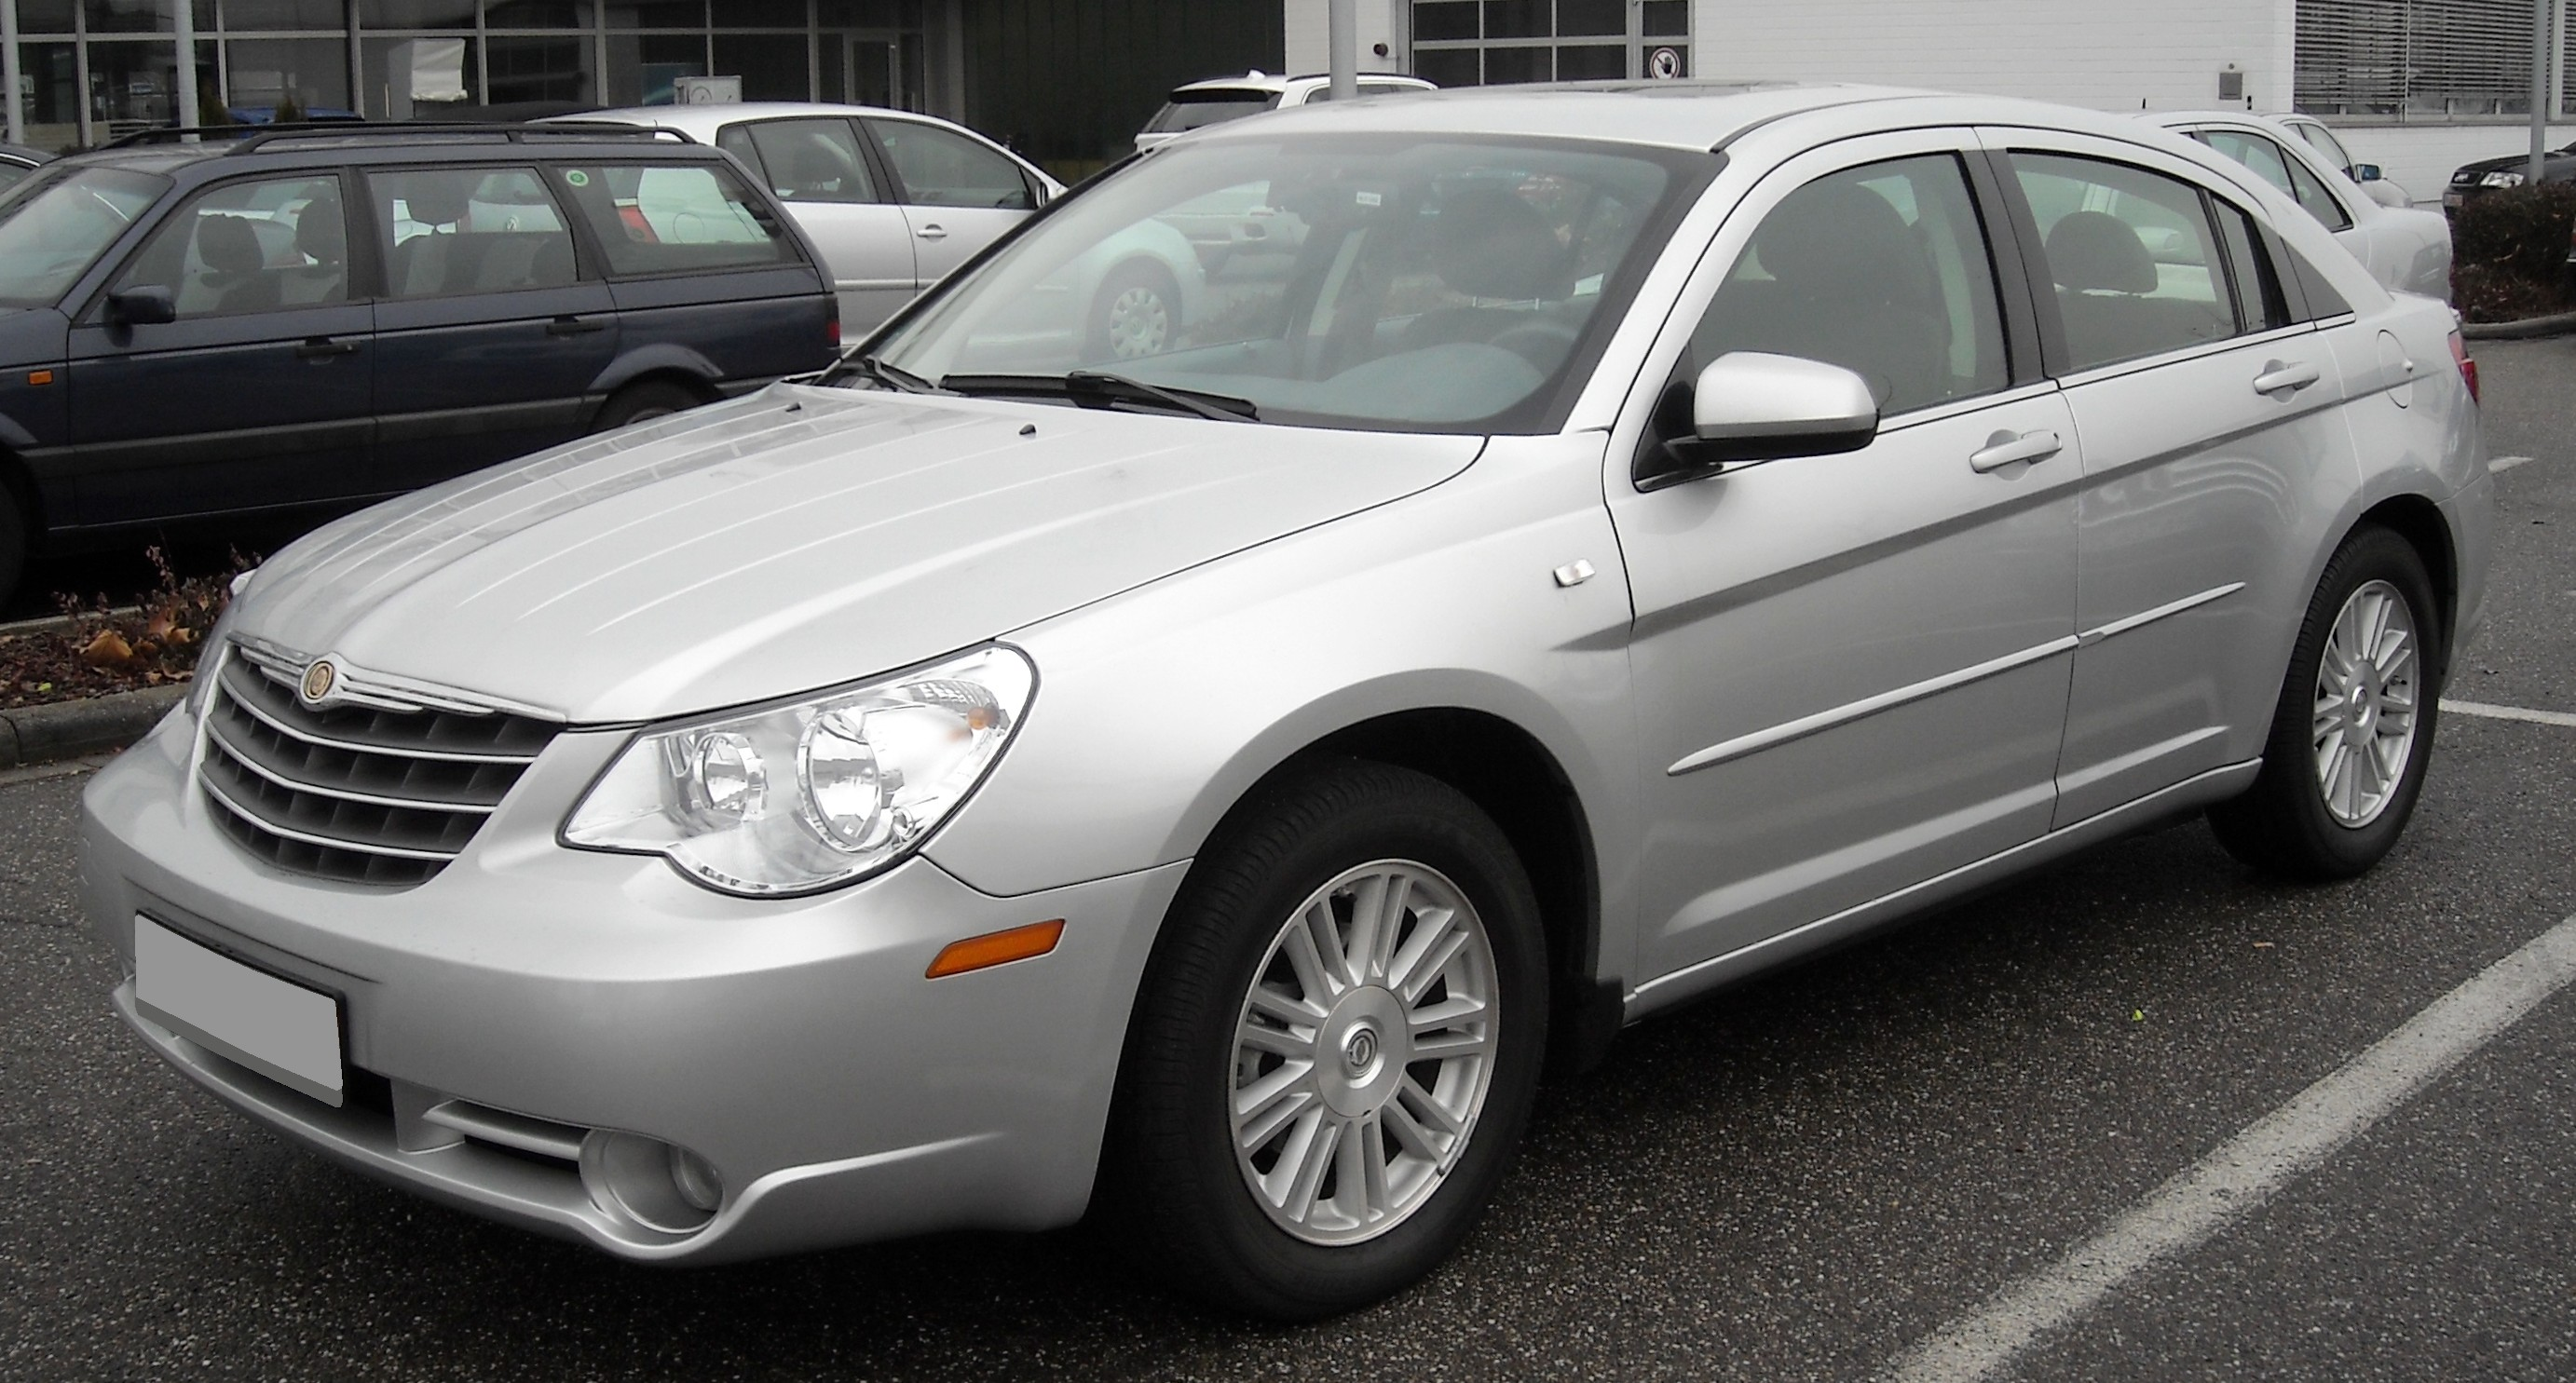 2009 Chrysler Sebring #2